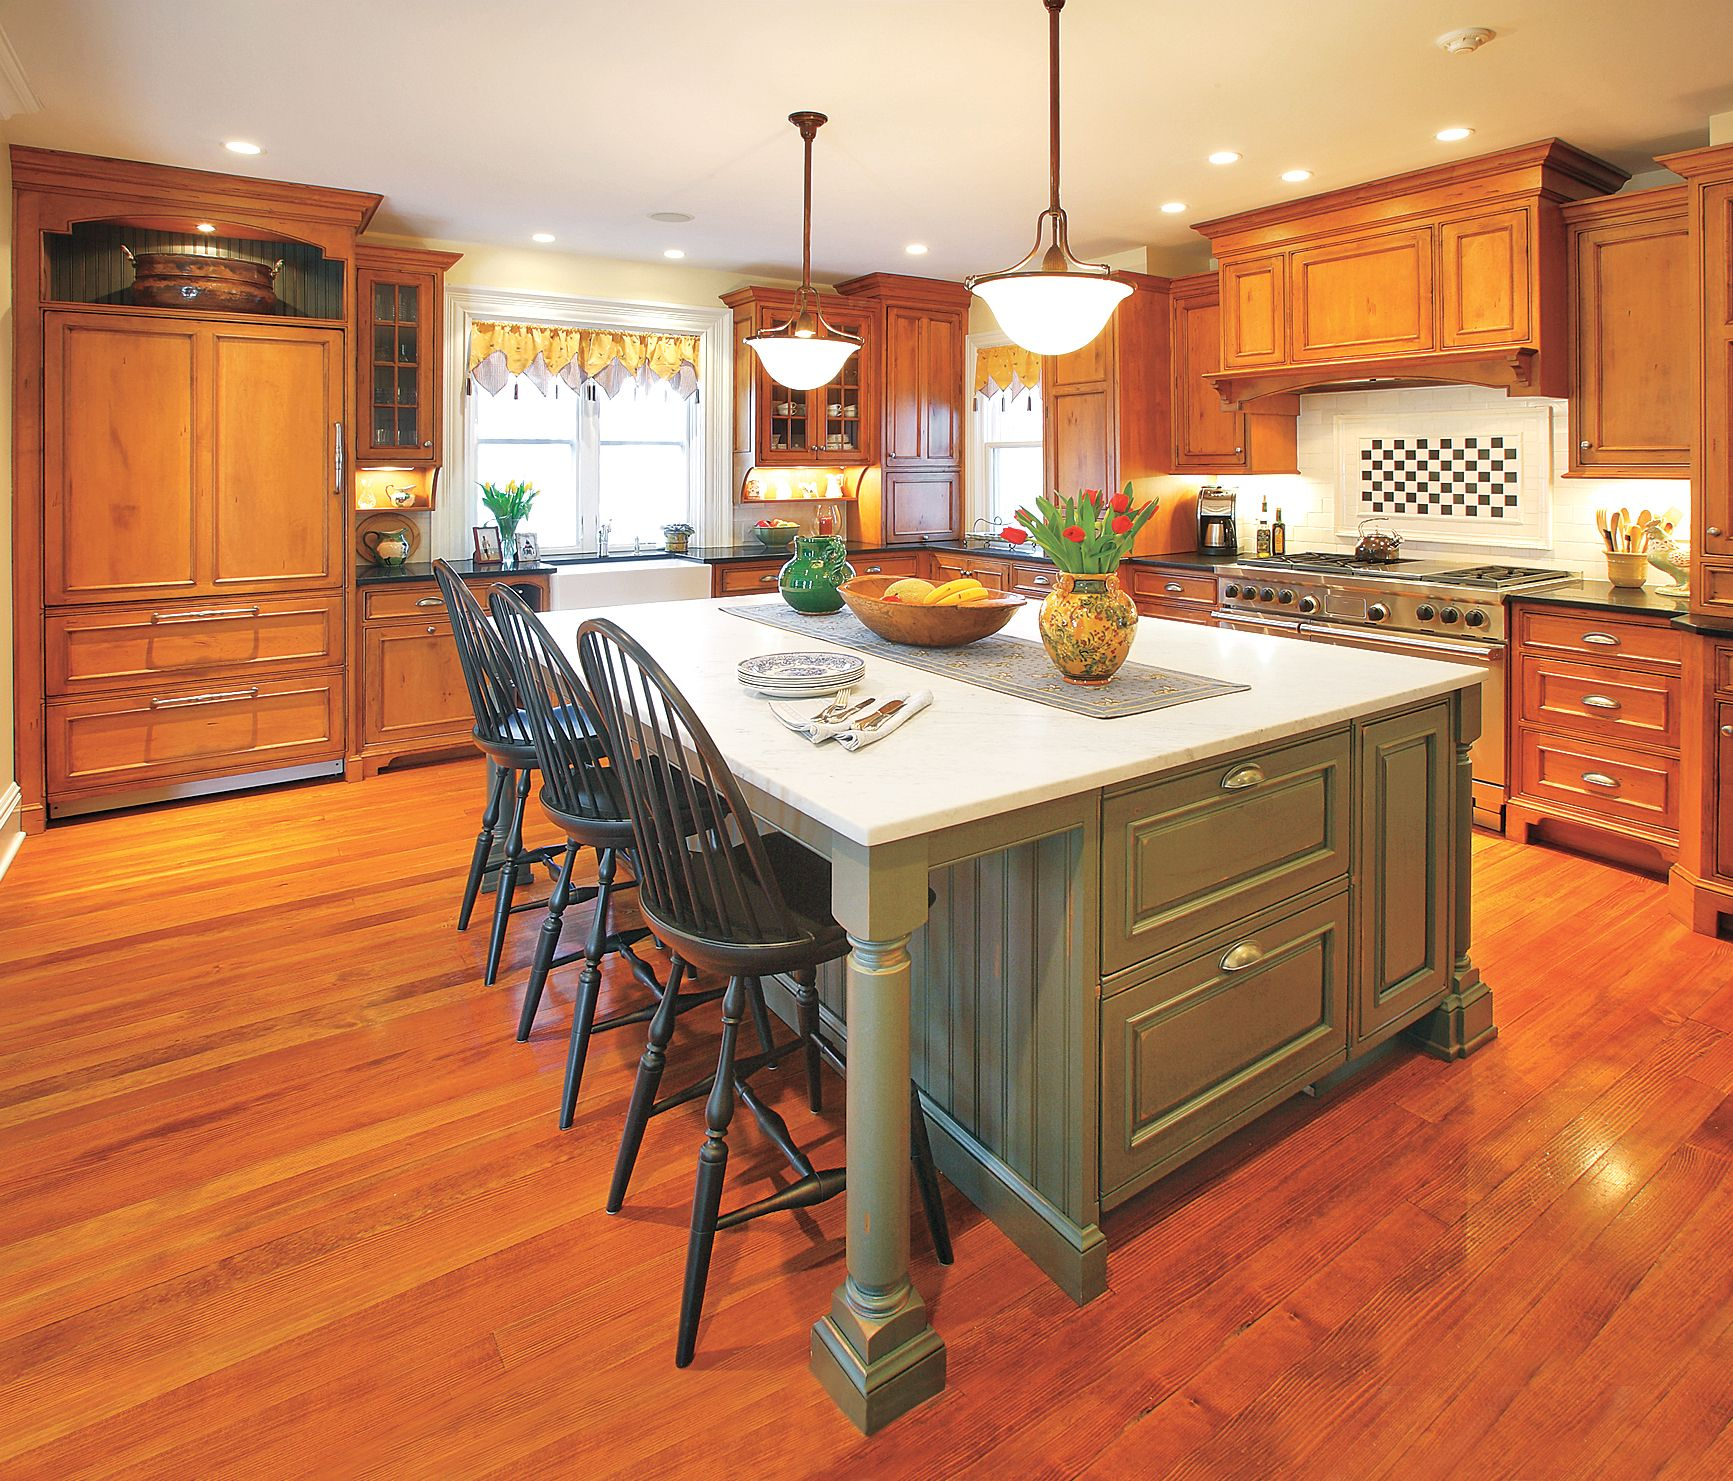 20 Small Eat In Kitchen Ideas Tips Dining Chairs: Large Kitchen Island, Kitchen